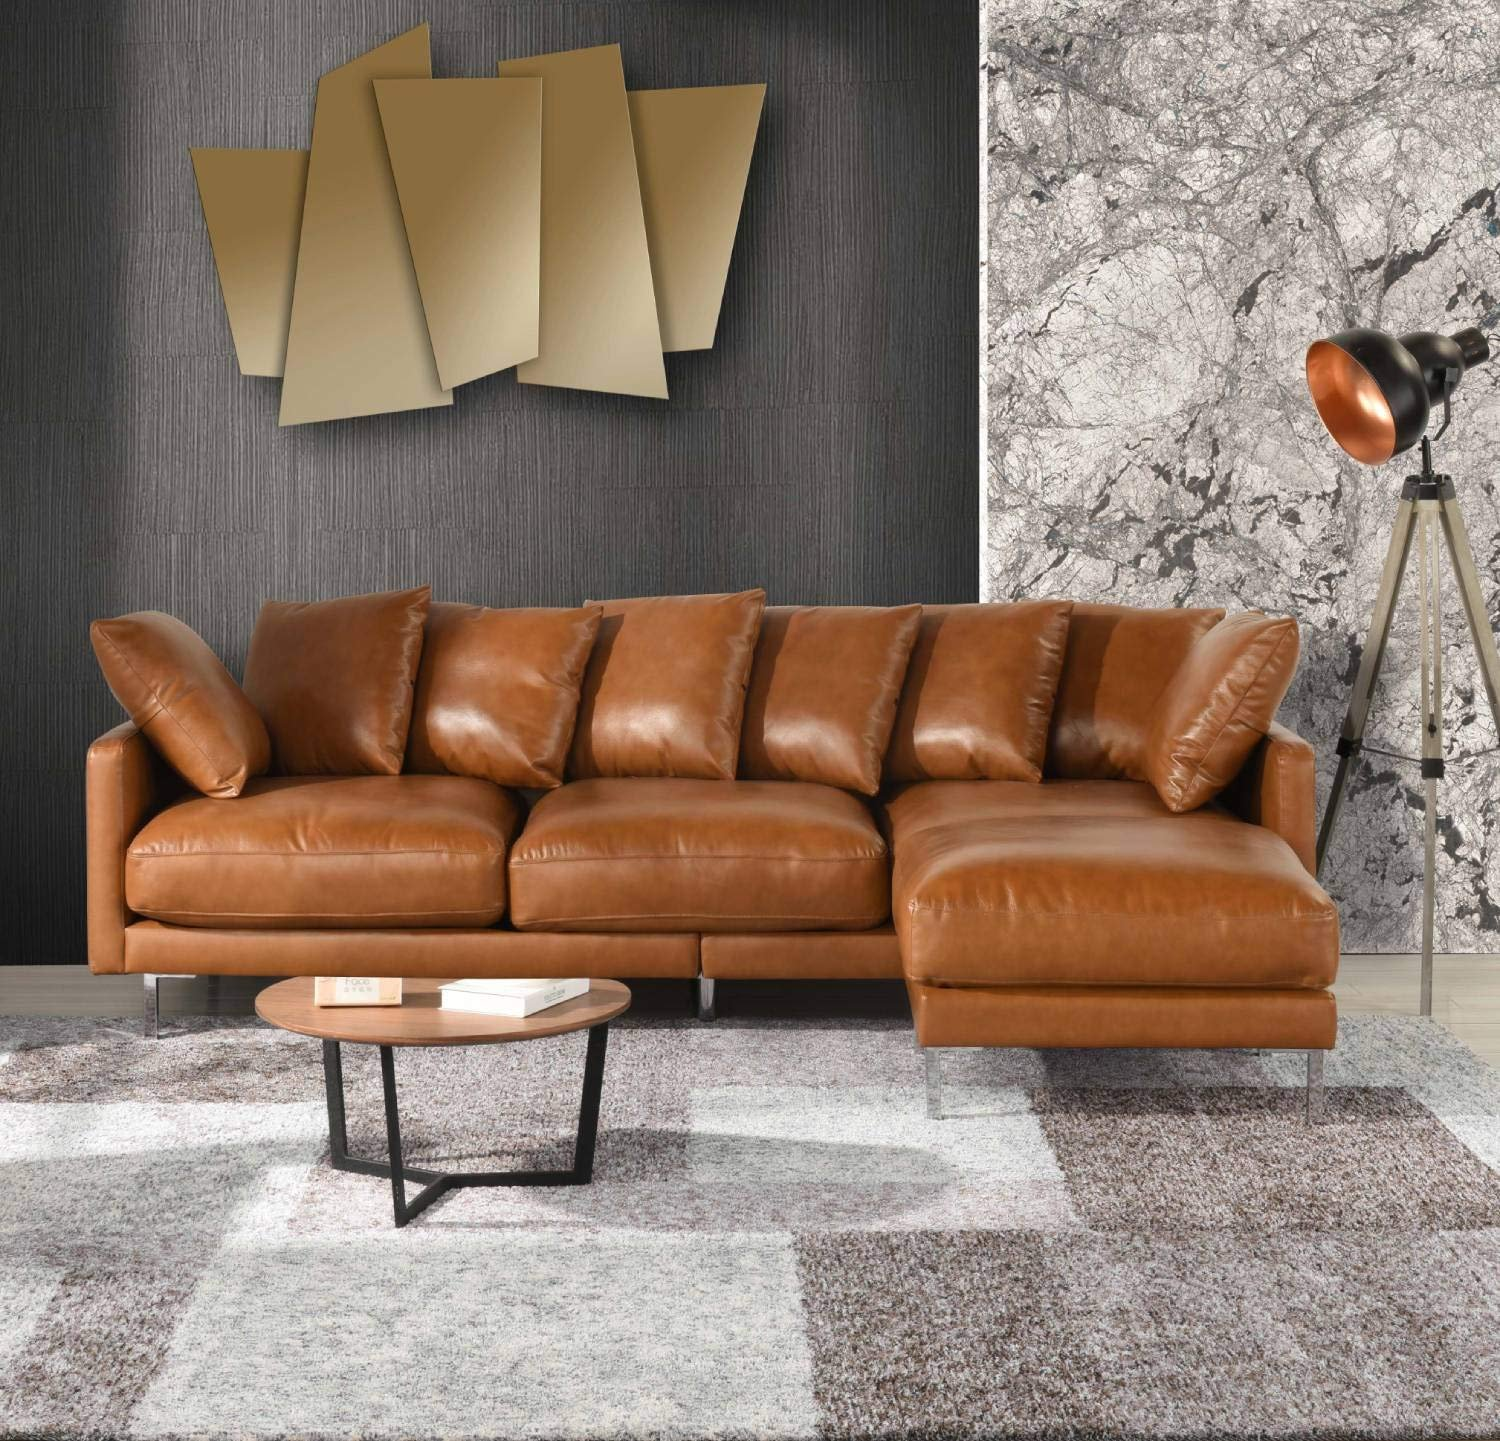 Details about Modern Home Leather Match Upholstery Sectional Sofa Chaise  Ottoman Couch, Camel